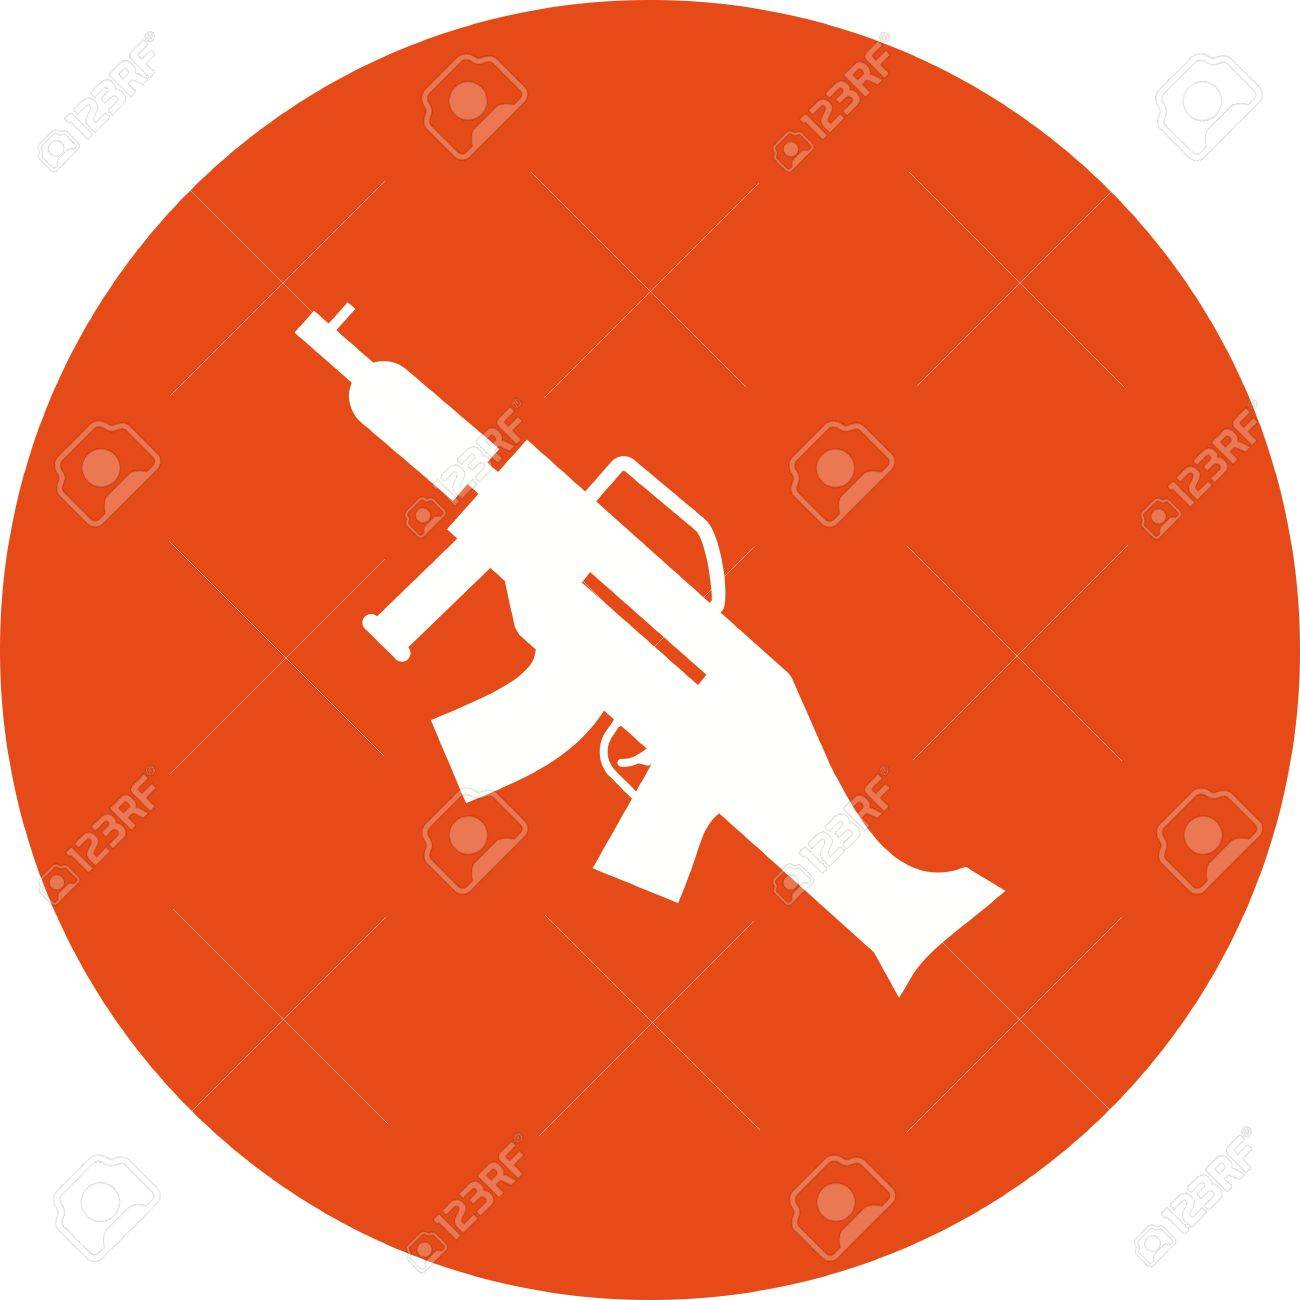 Machine, gun, war, icon vector image  Can also be used for military